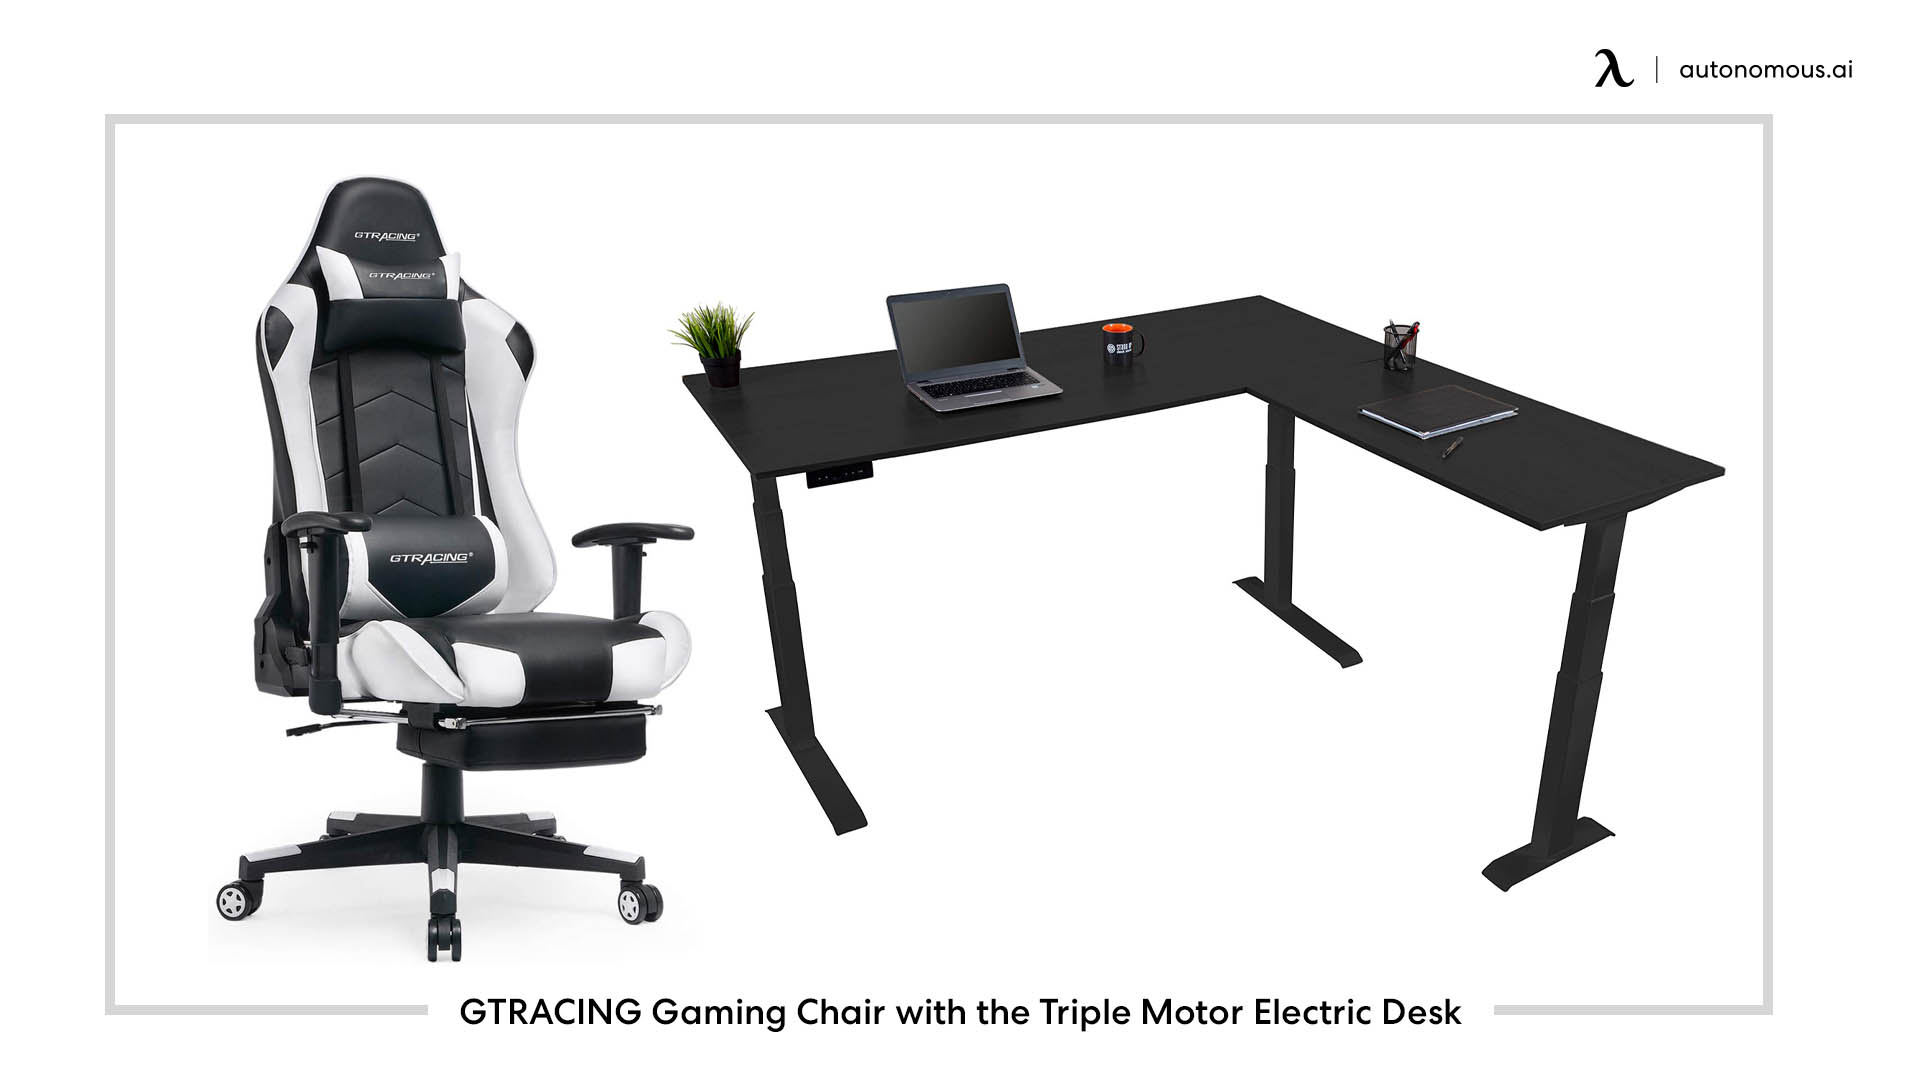 black heavy-duty GTRACING chair and Triple Motor desk combination